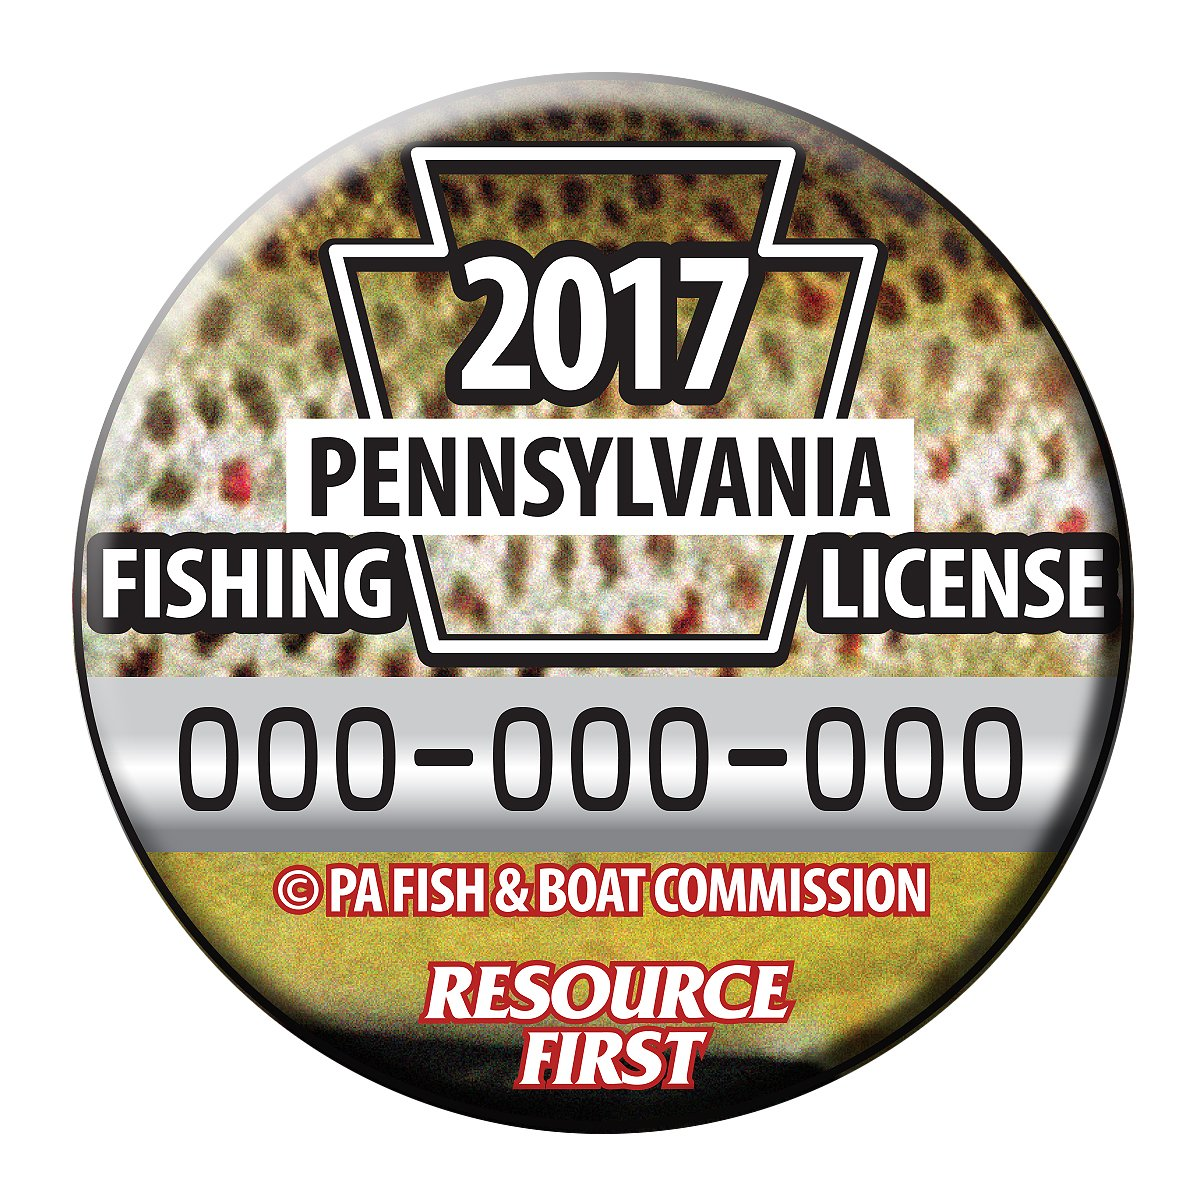 Pa fish boat comm fishandboat twitter for How much is a fishing license in pa